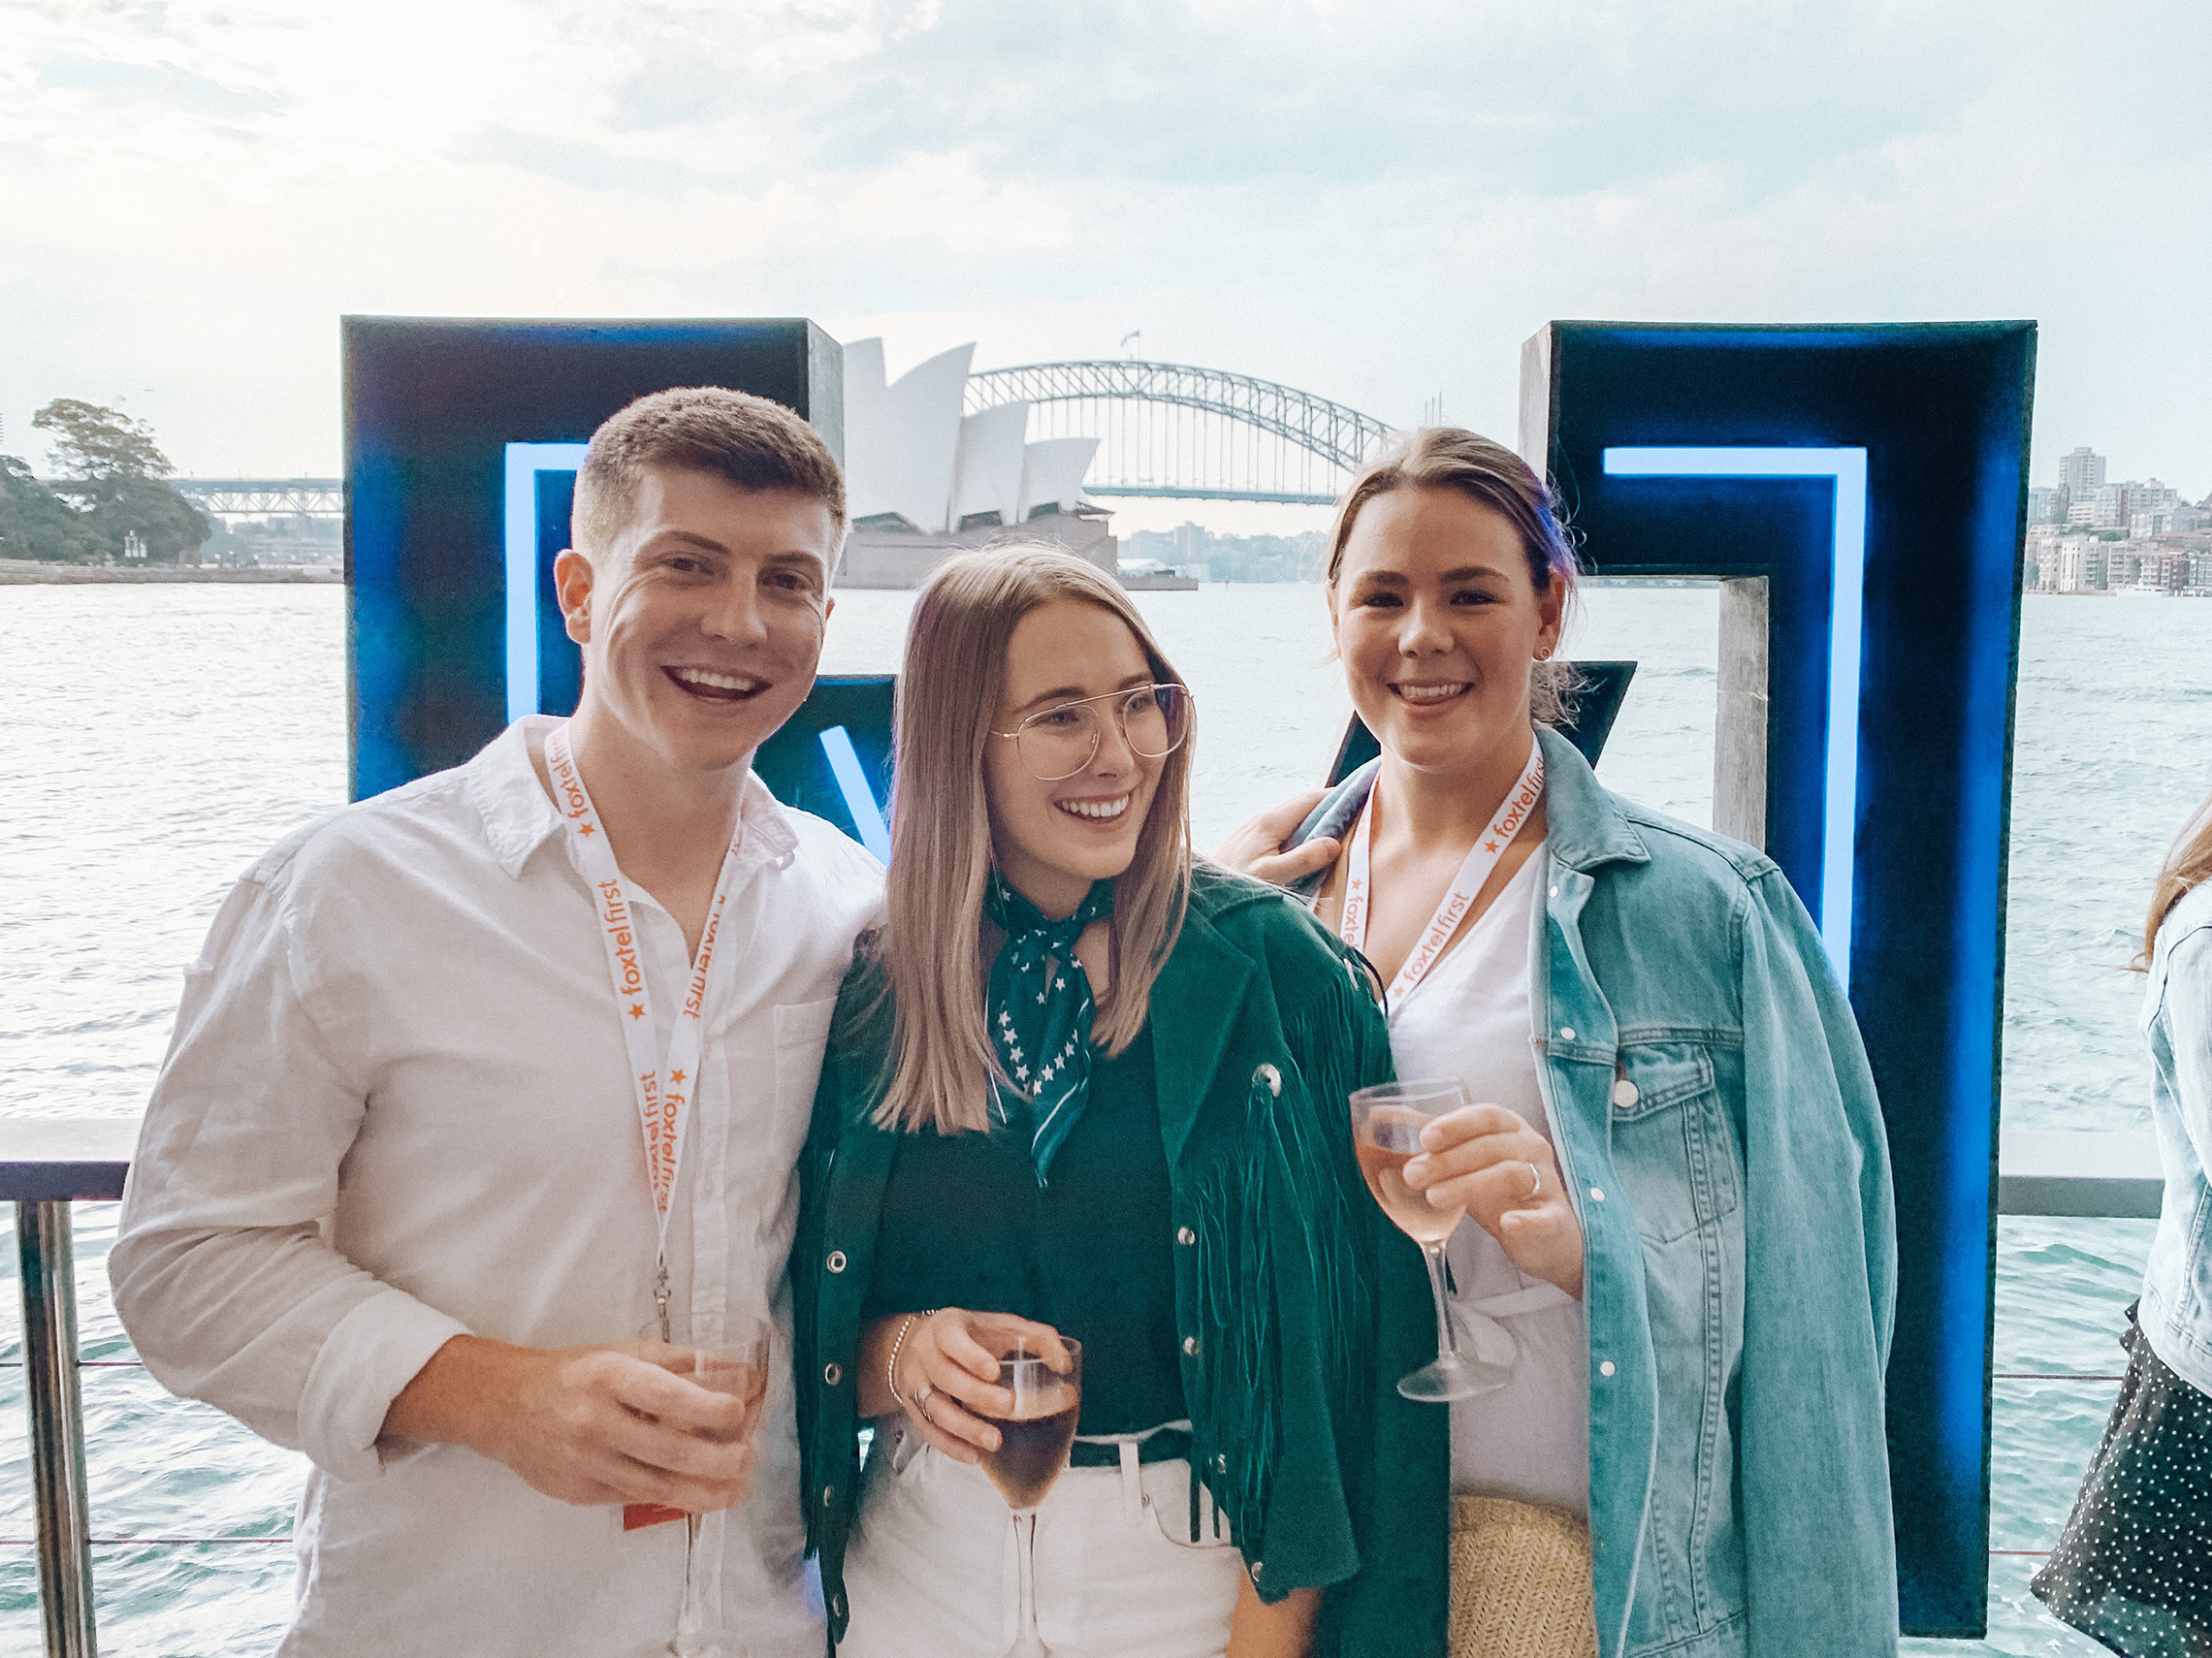 Three people standing in front of a large V letter on a boat